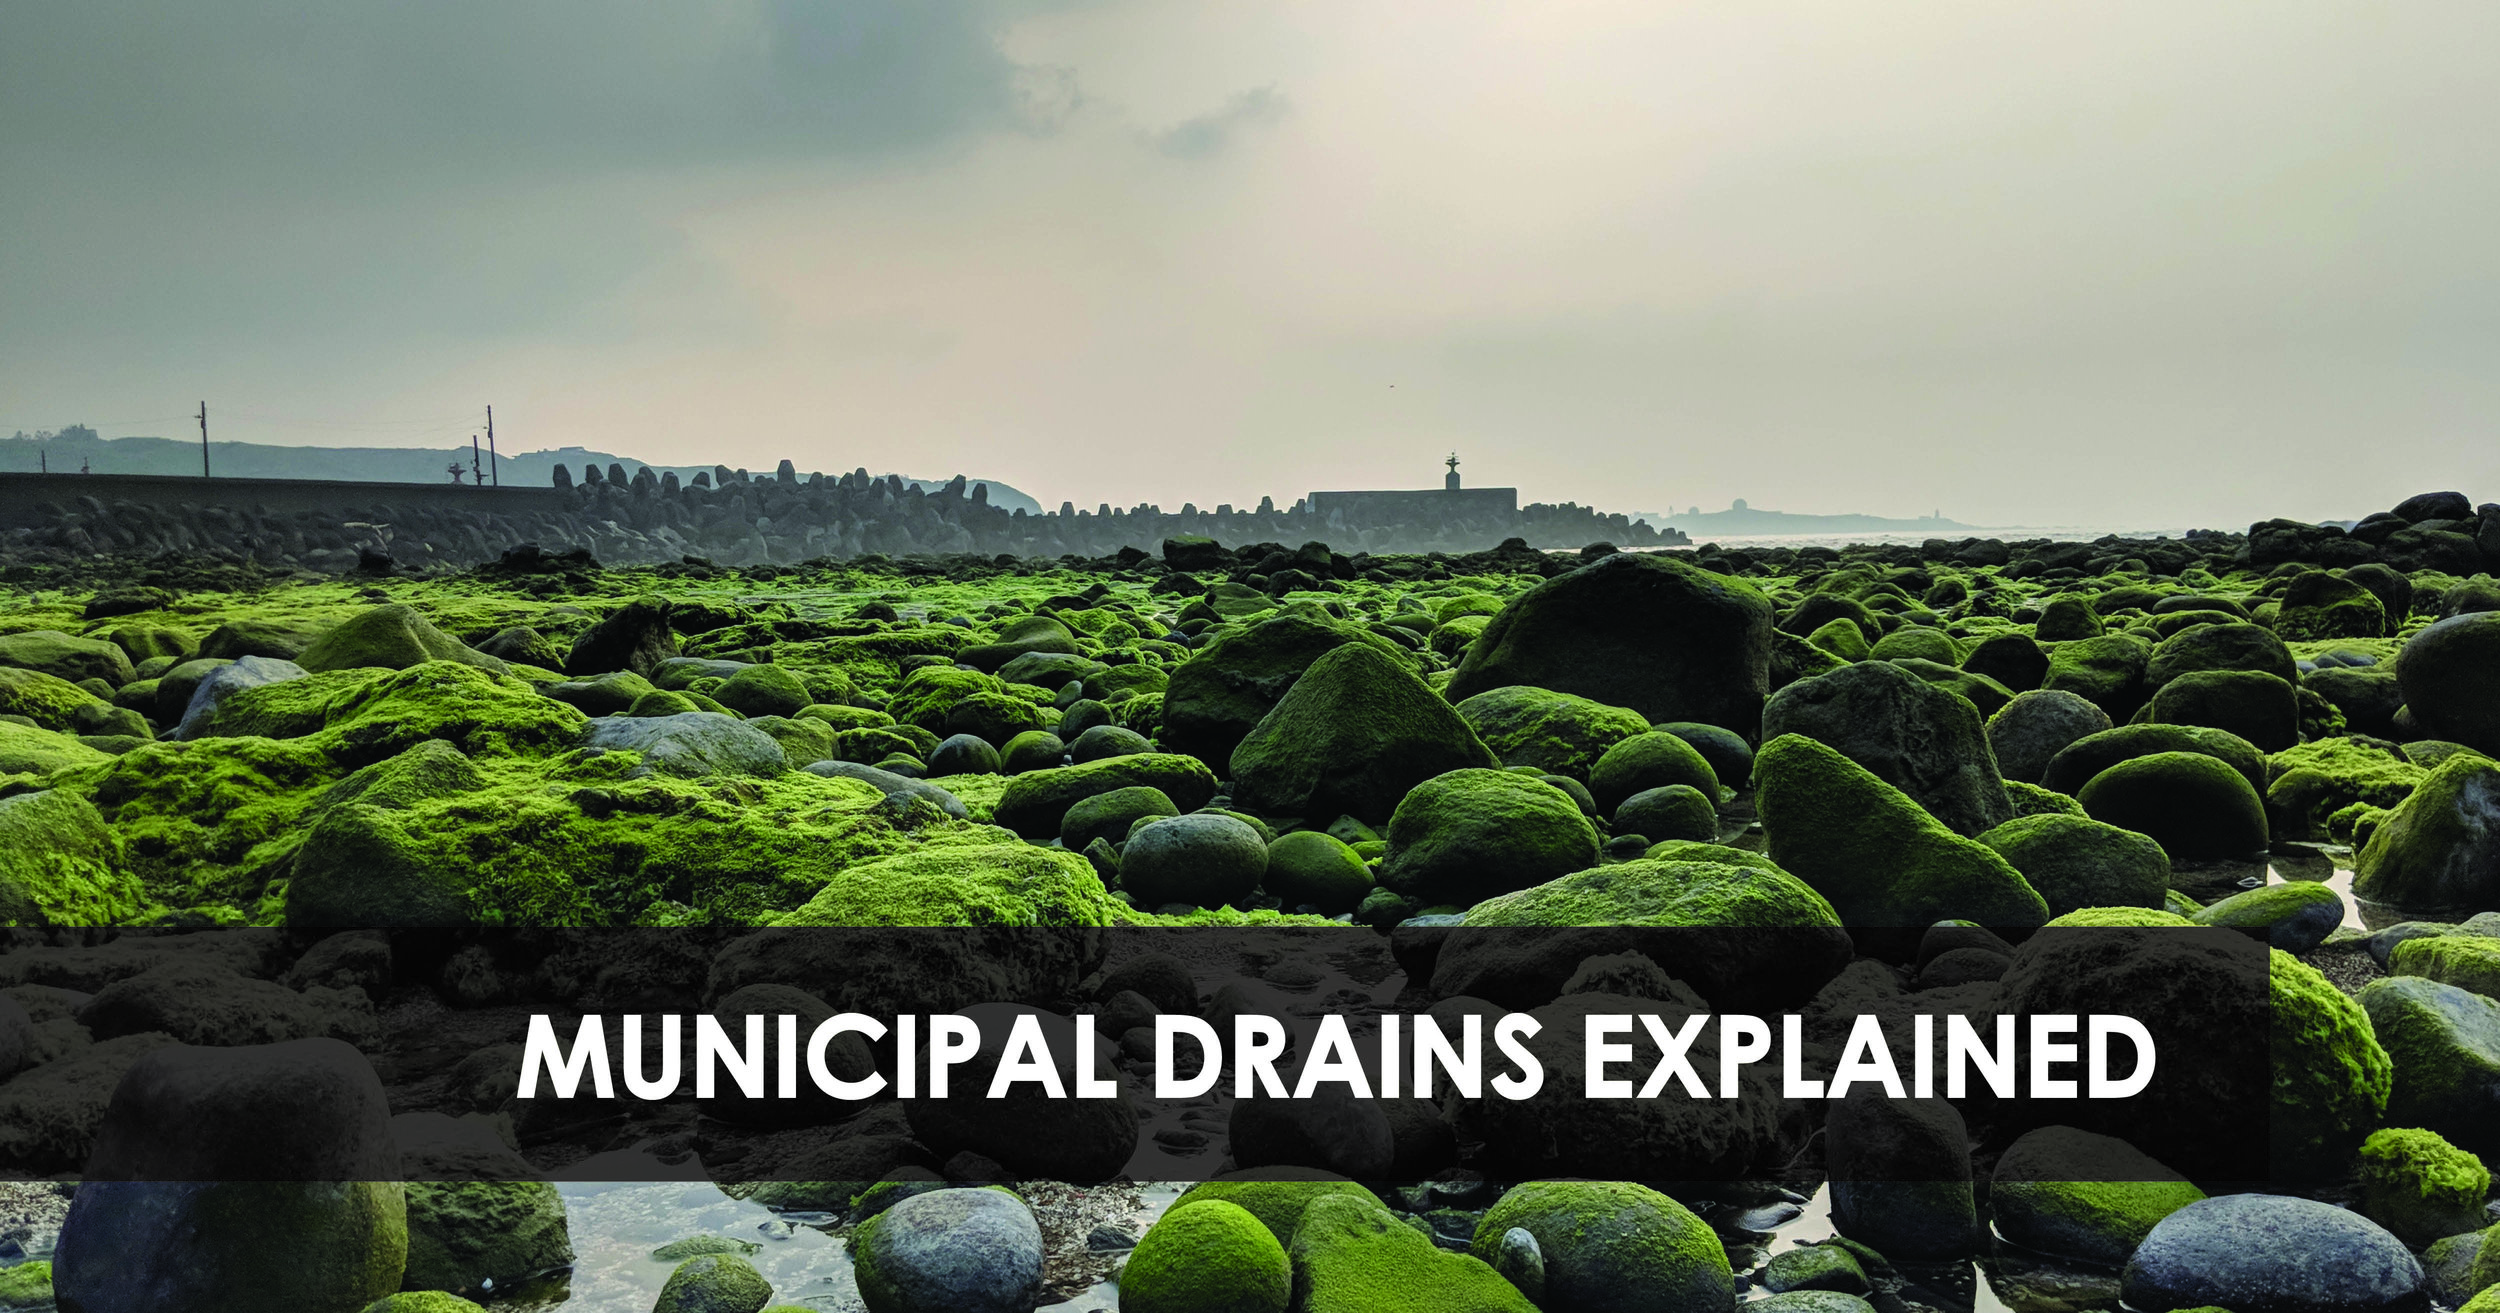 Municipal Drains Explained.jpg